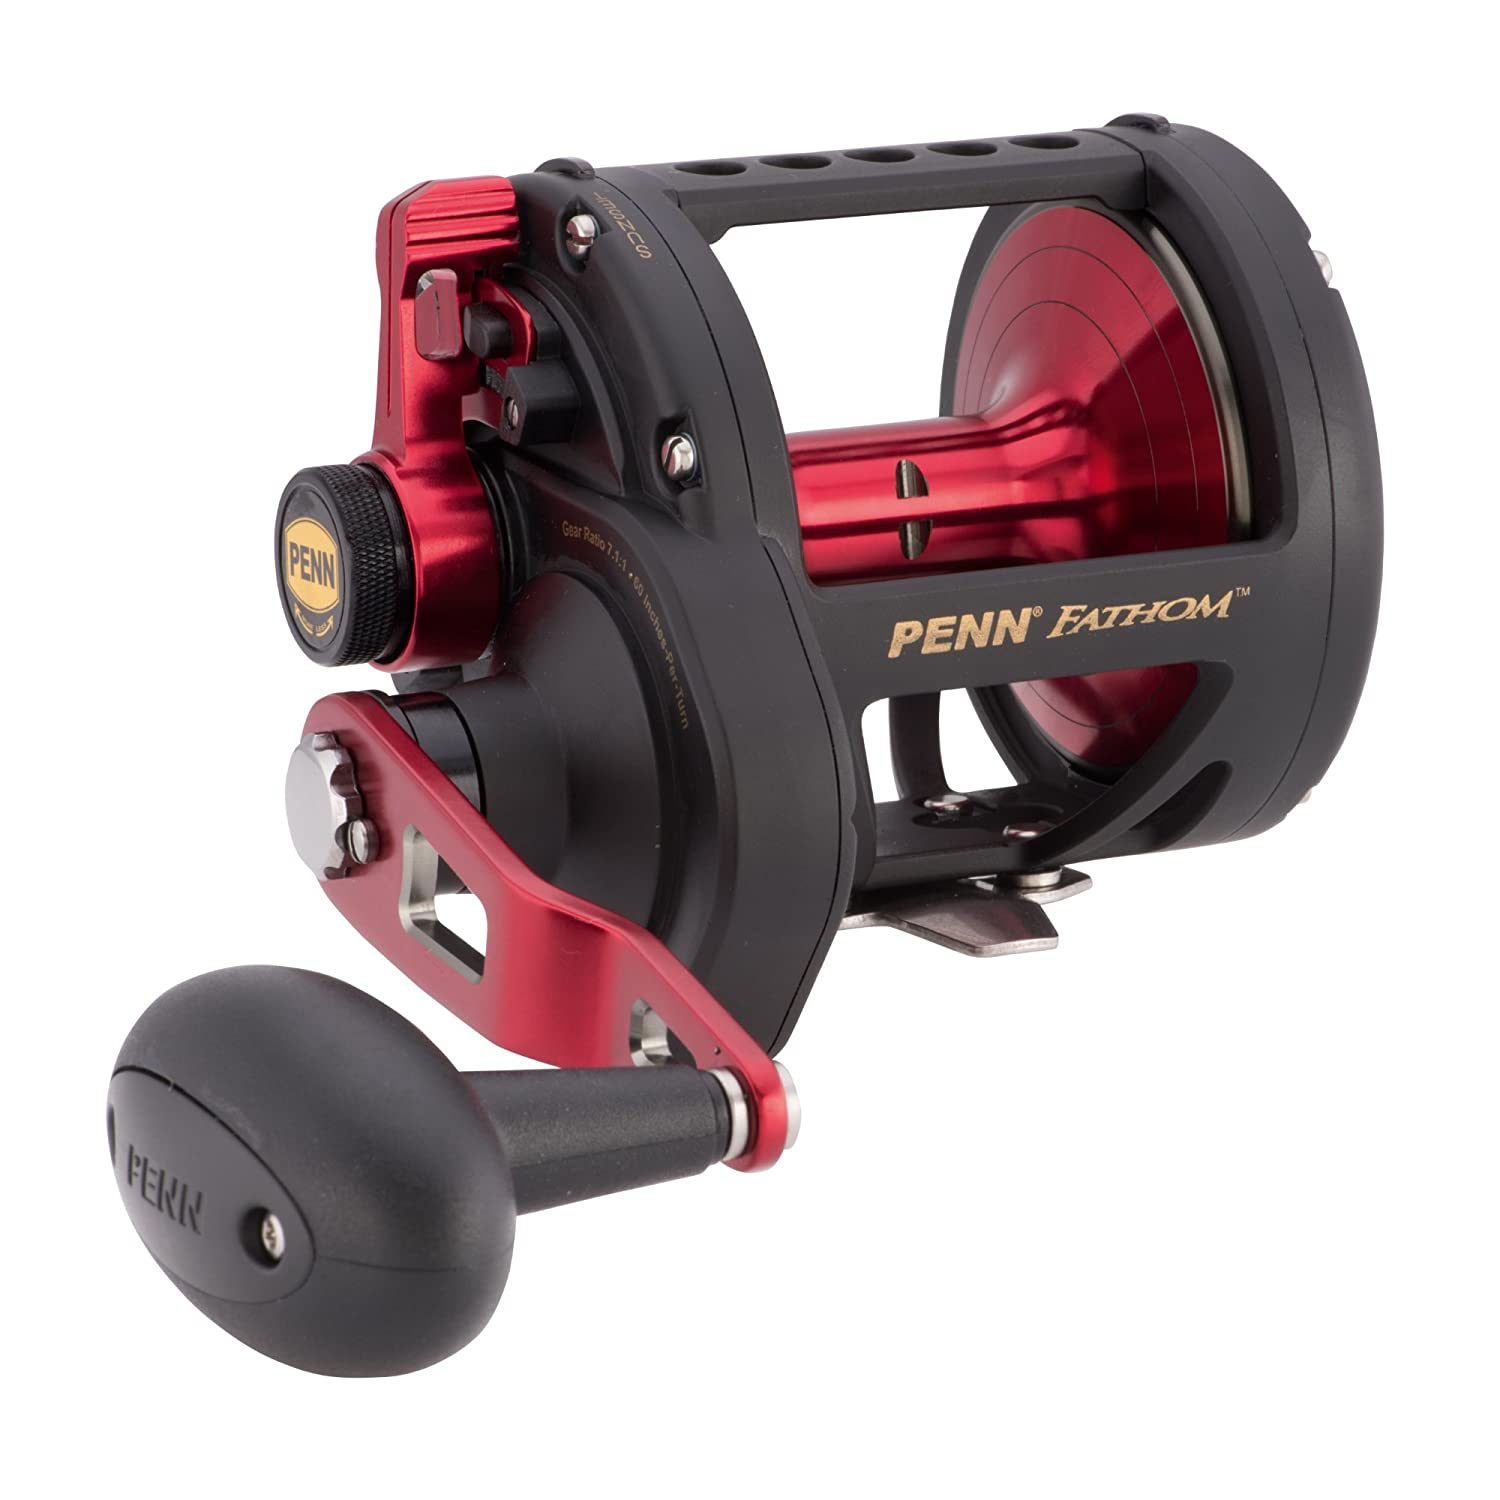 Fishing Reel Penn Fathom 30 Lever Drag 2 Speed Left Hand